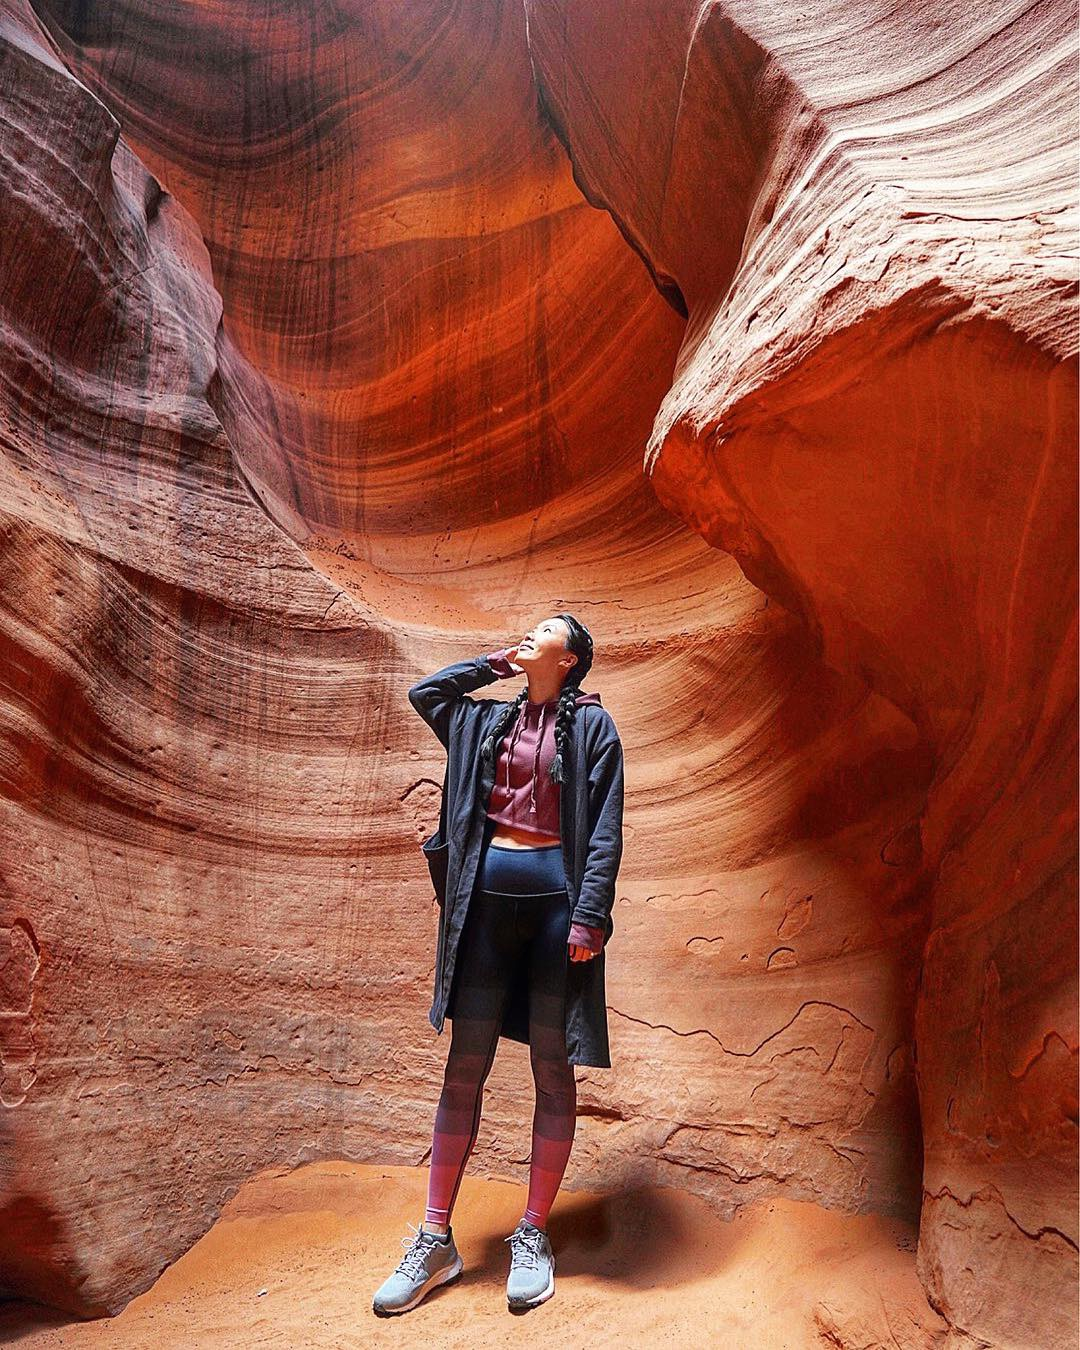 Antelope Canyon travel guide tips